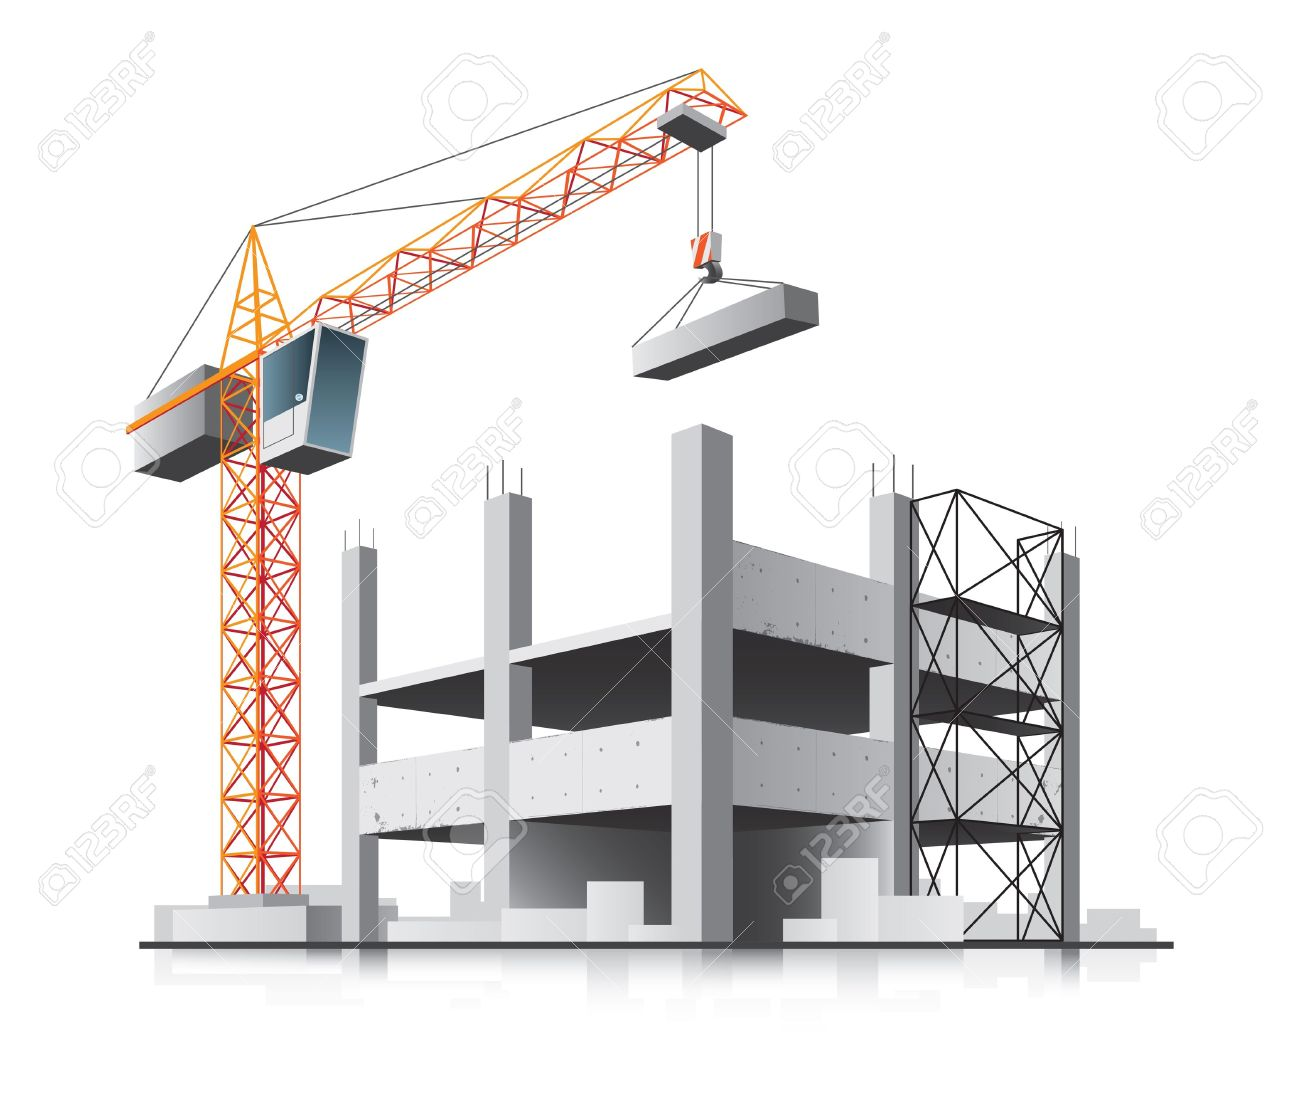 Building construction site clipart svg free stock Building construction clipart - ClipartFest svg free stock